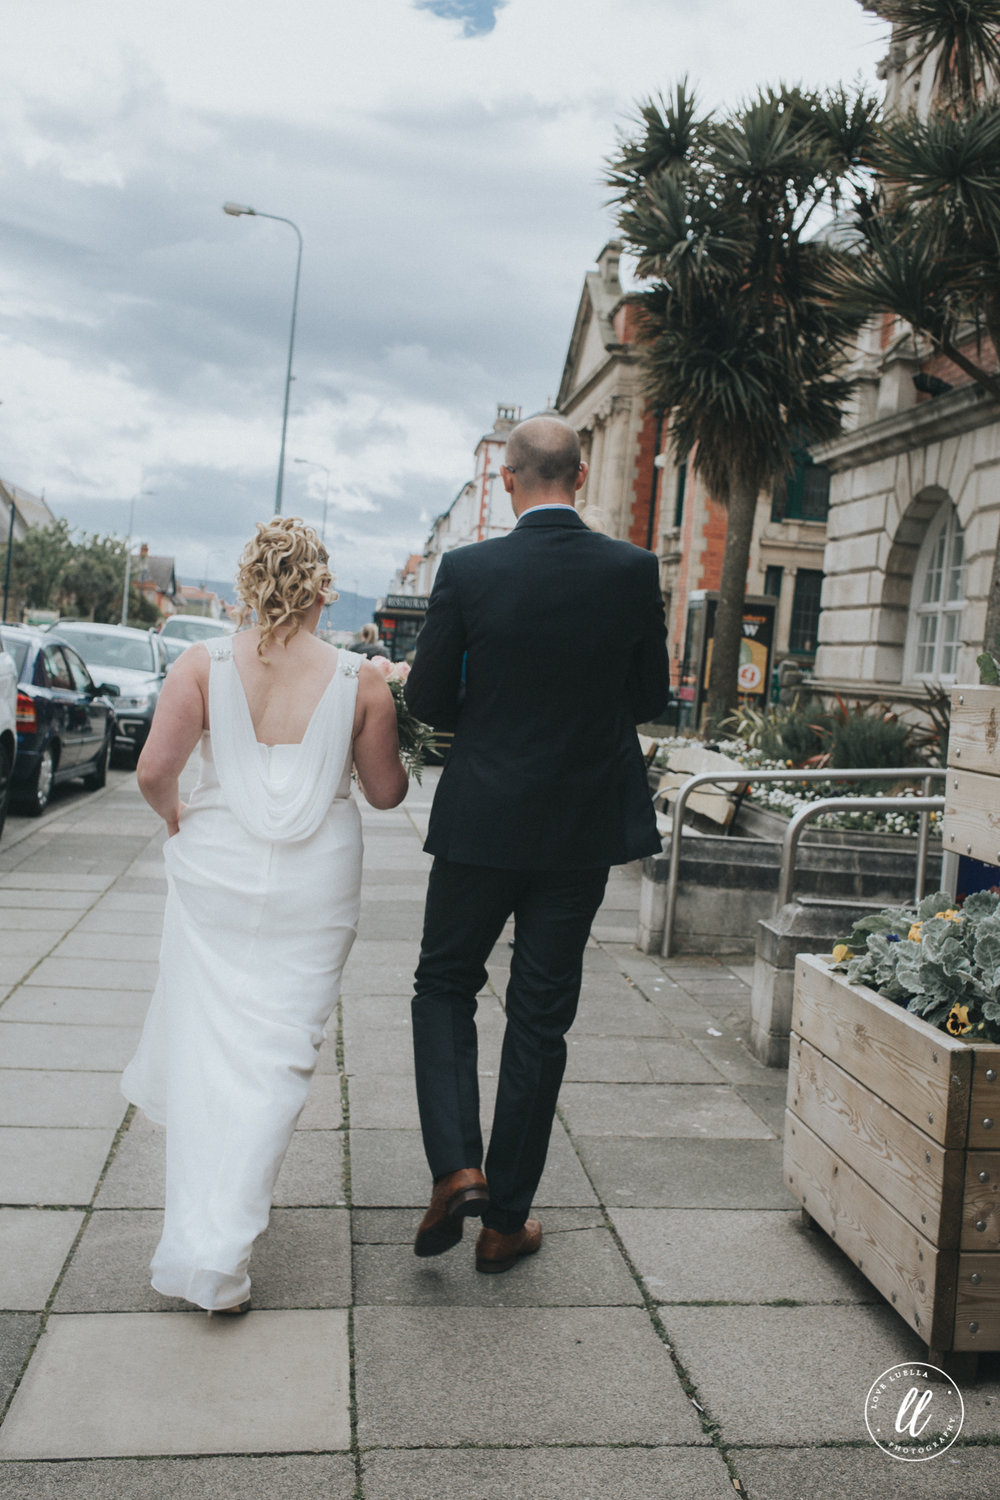 The bride, groom and their son walk through llandudno town